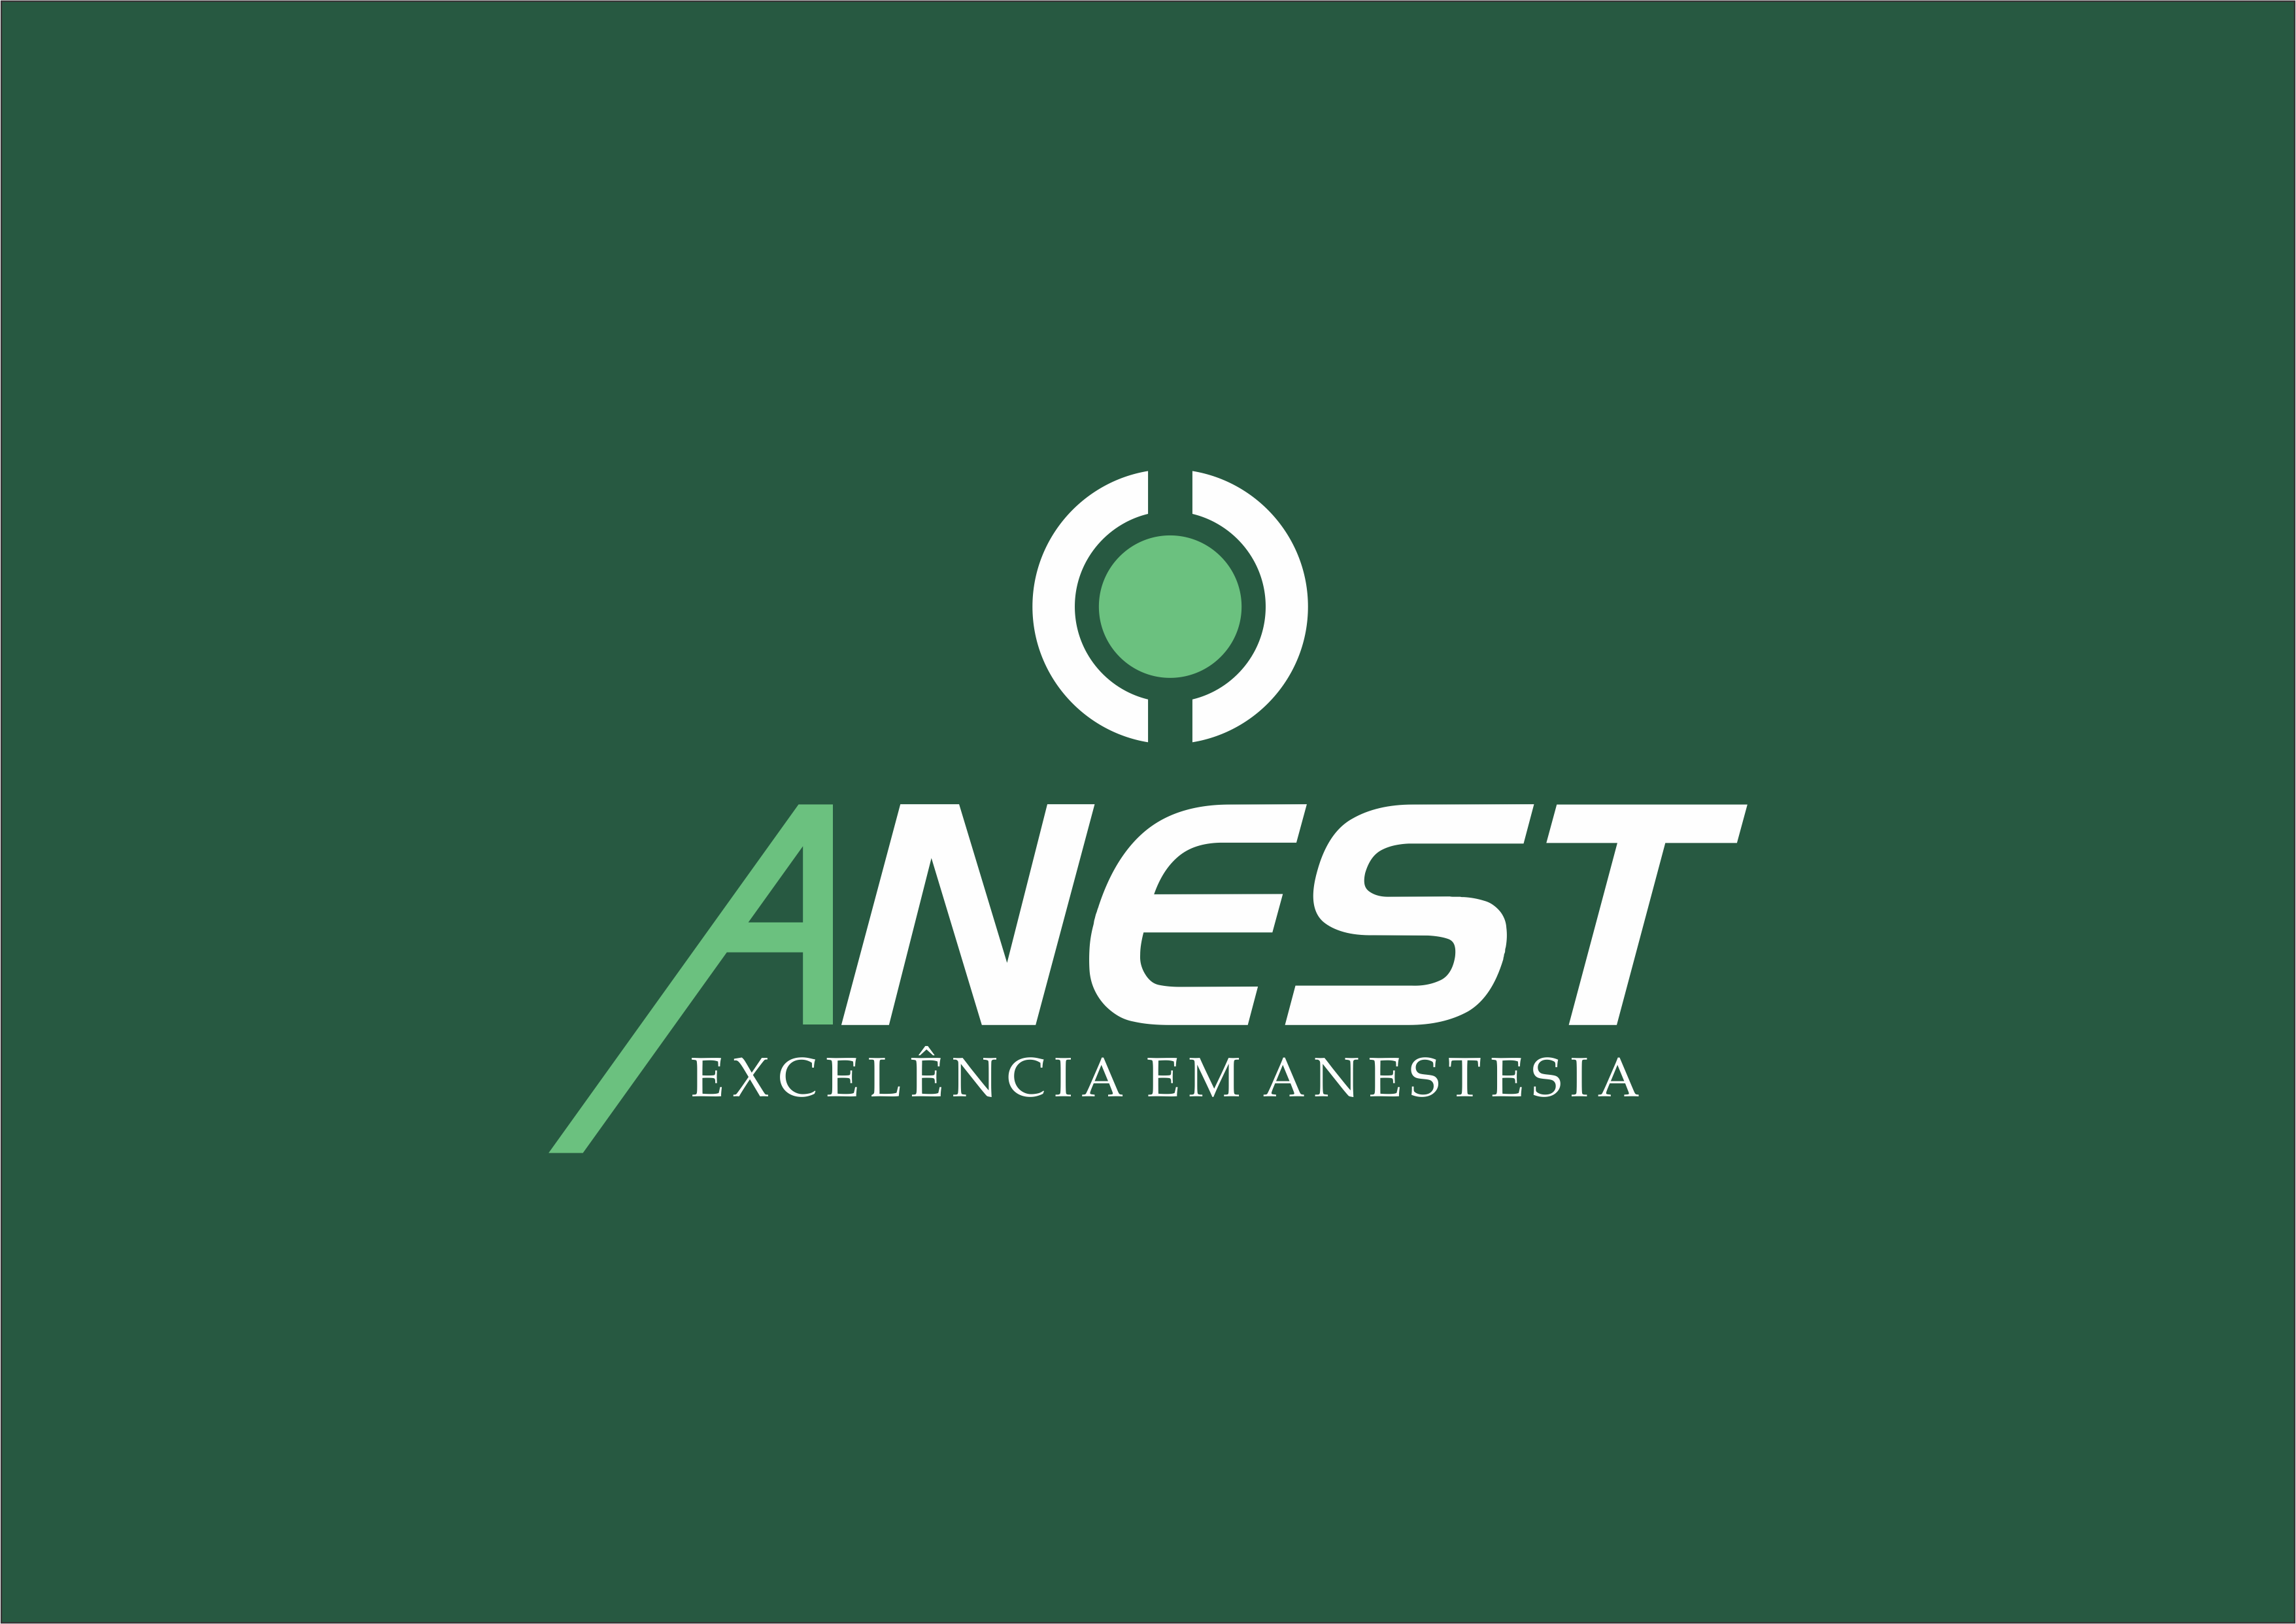 Anest